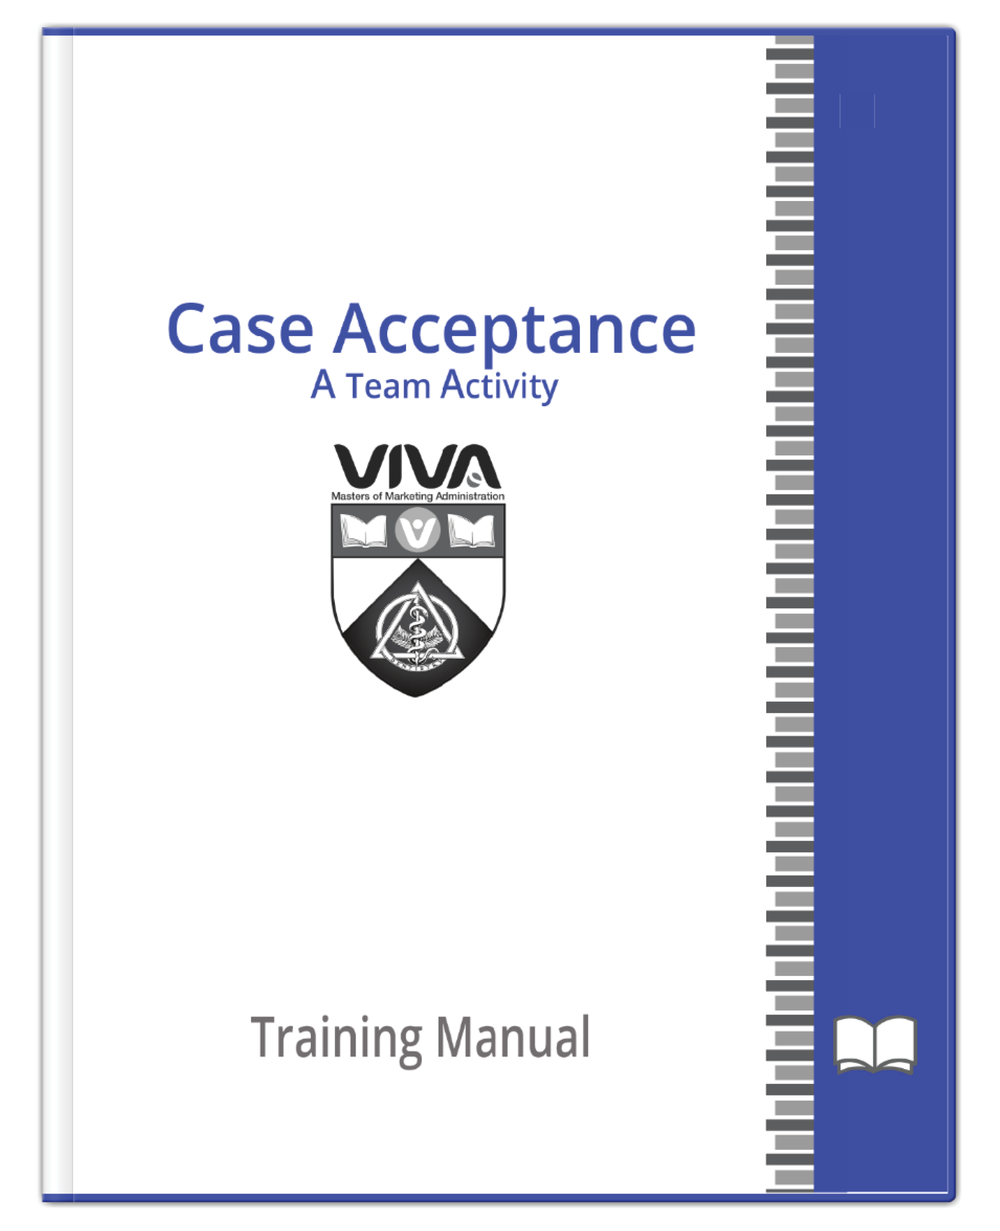 Case Acceptance Cover.png